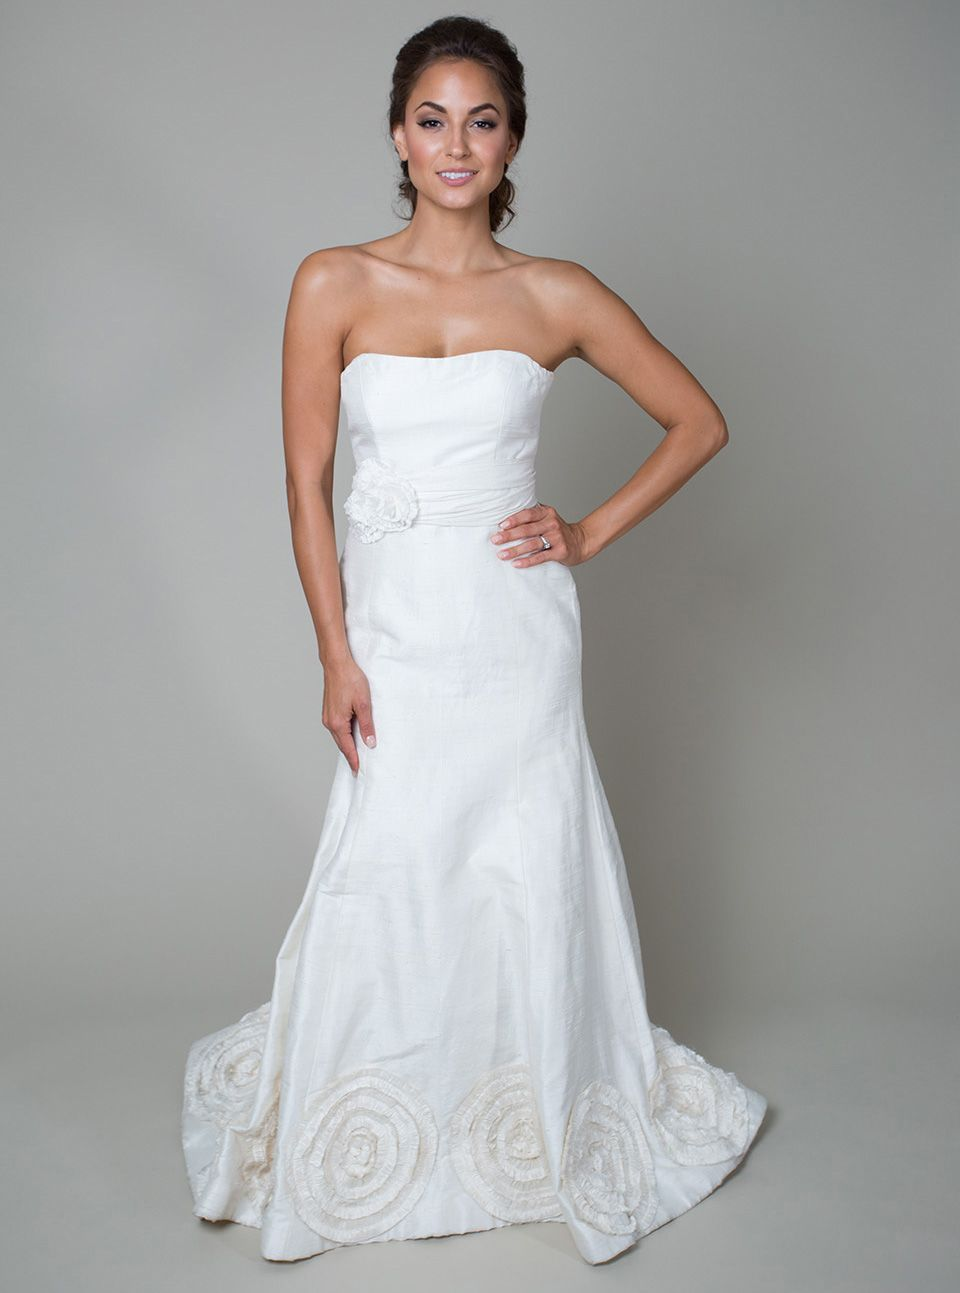 'Mary Cerella' Charming and nostalgic, this fit-to-flare gown features a straight neckline, chapel train, and hand-made flowers bordering the hem. The waist is defined with the Mary Cerella belt featuring a ruched waistband and hand-made flowers.